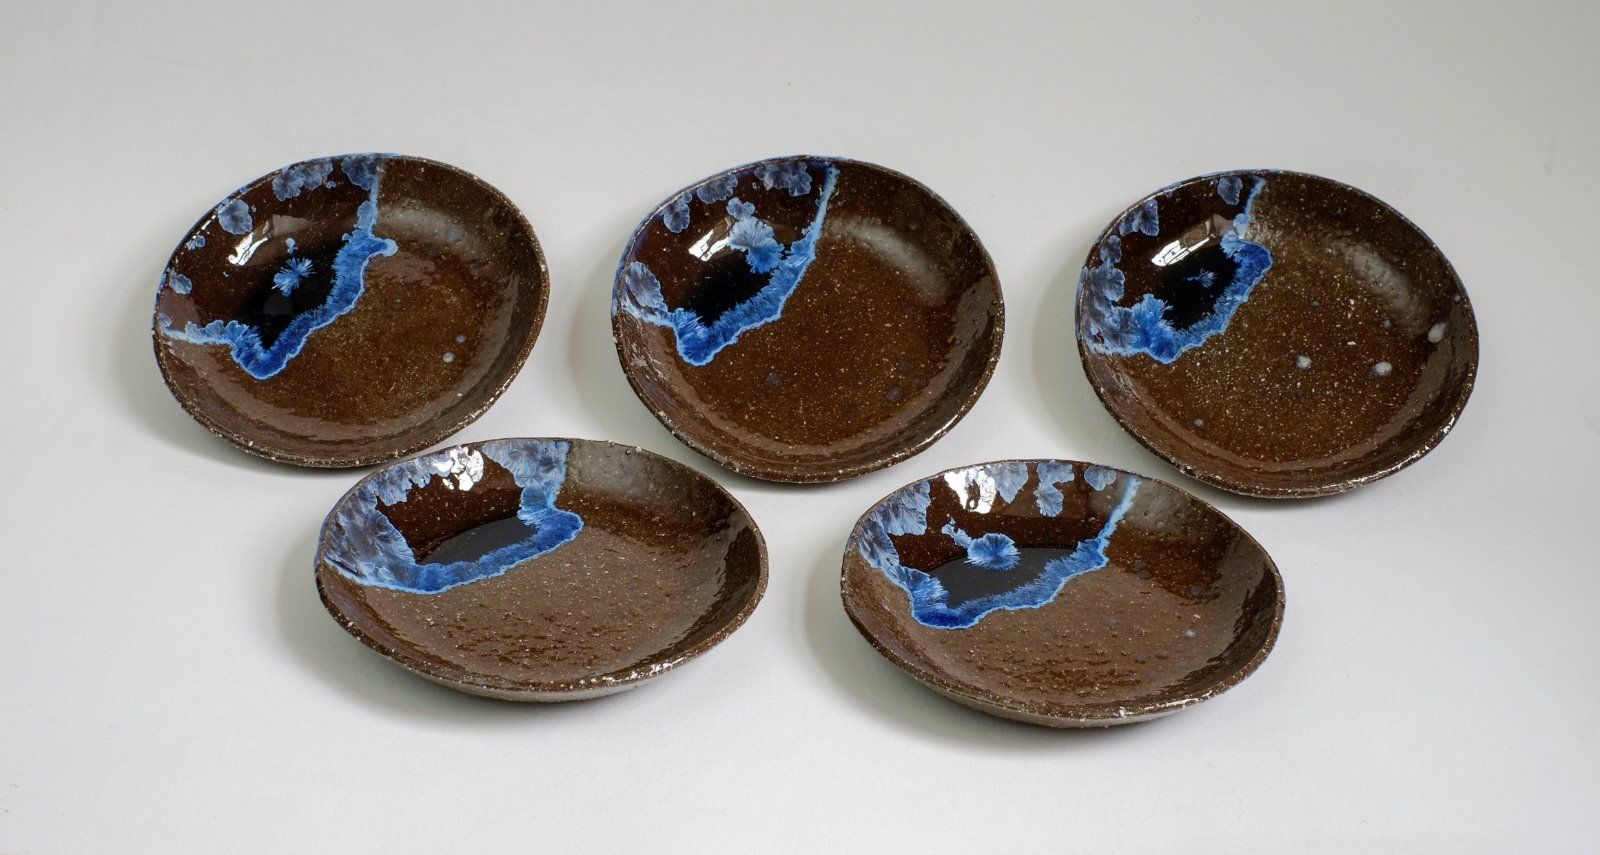 deep blue dishes